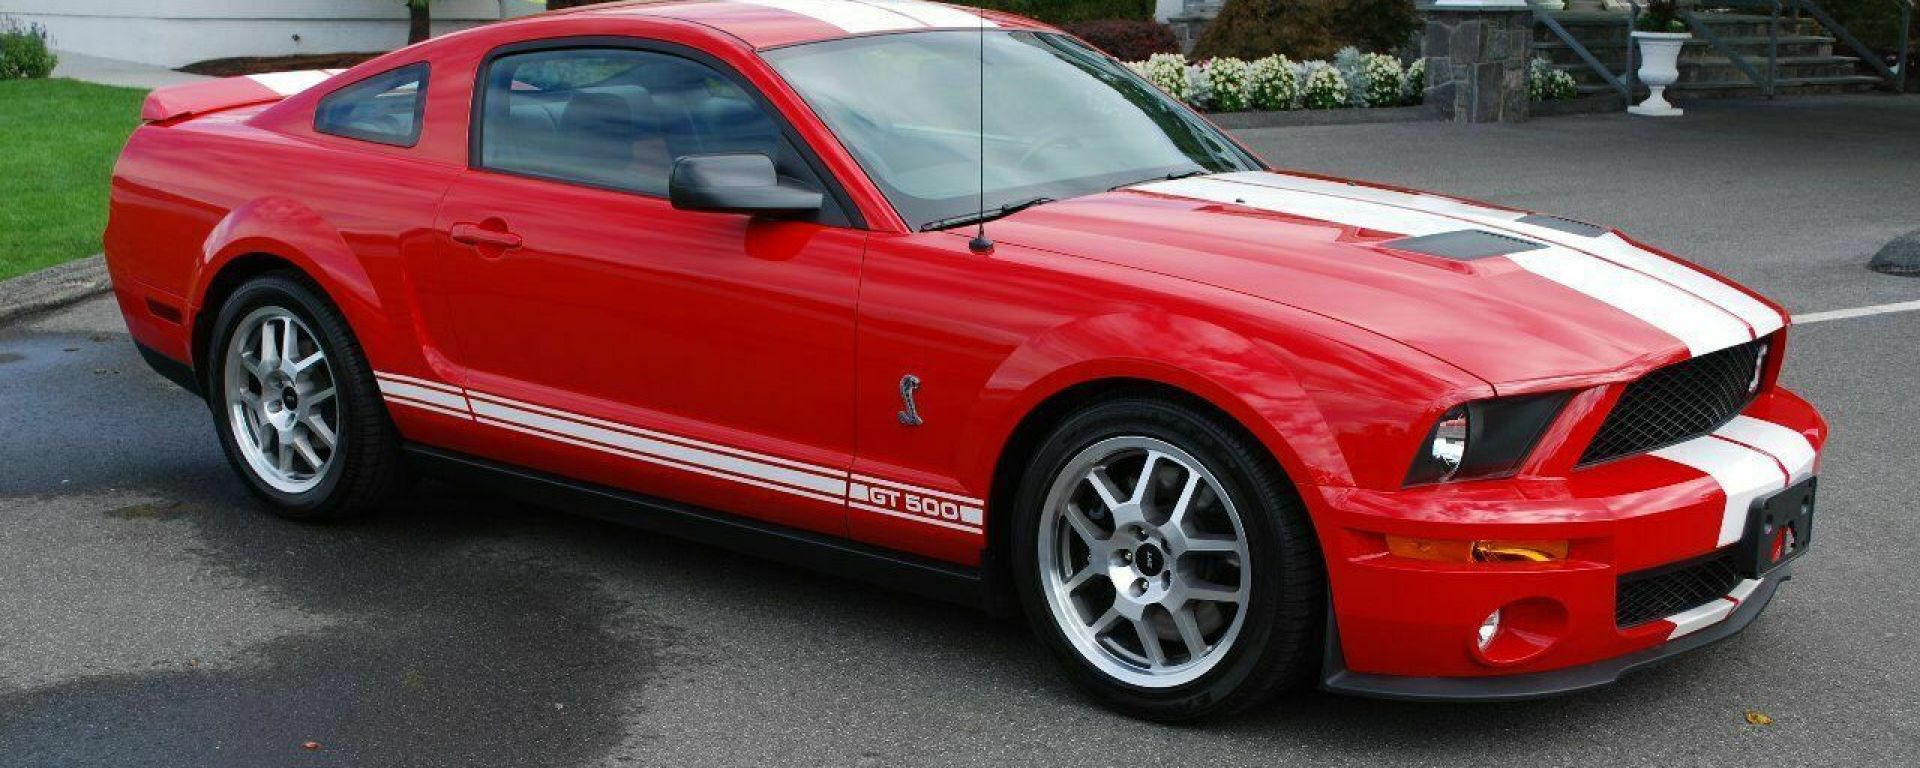 Ford Mustang Shelby GT500: 3/4 anteriore